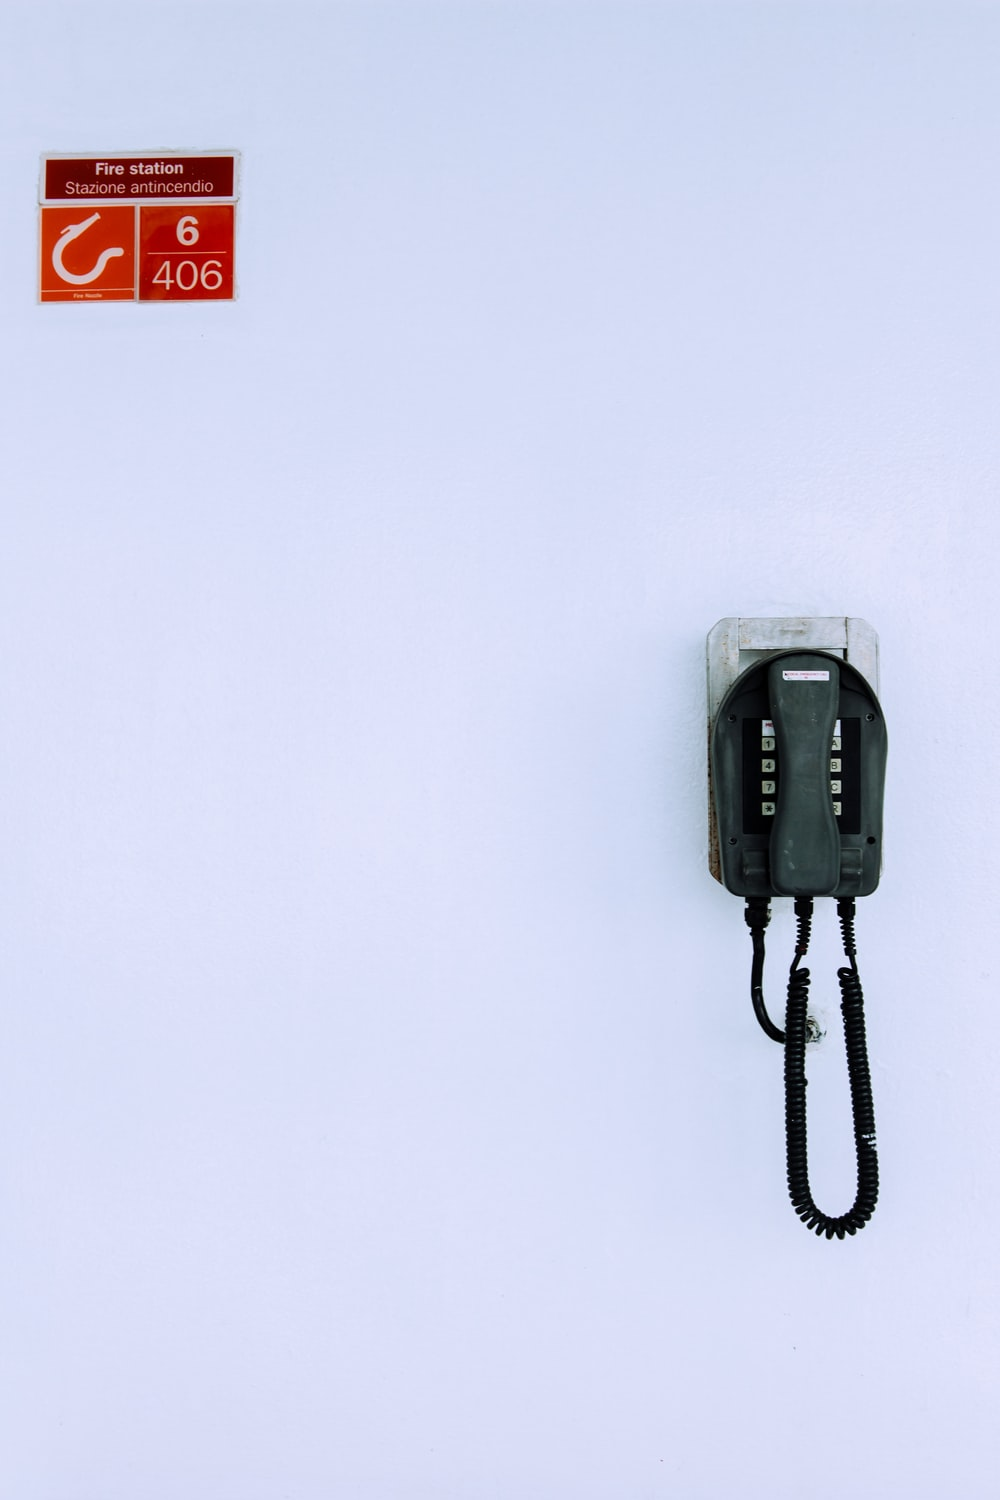 black and silver electronic device